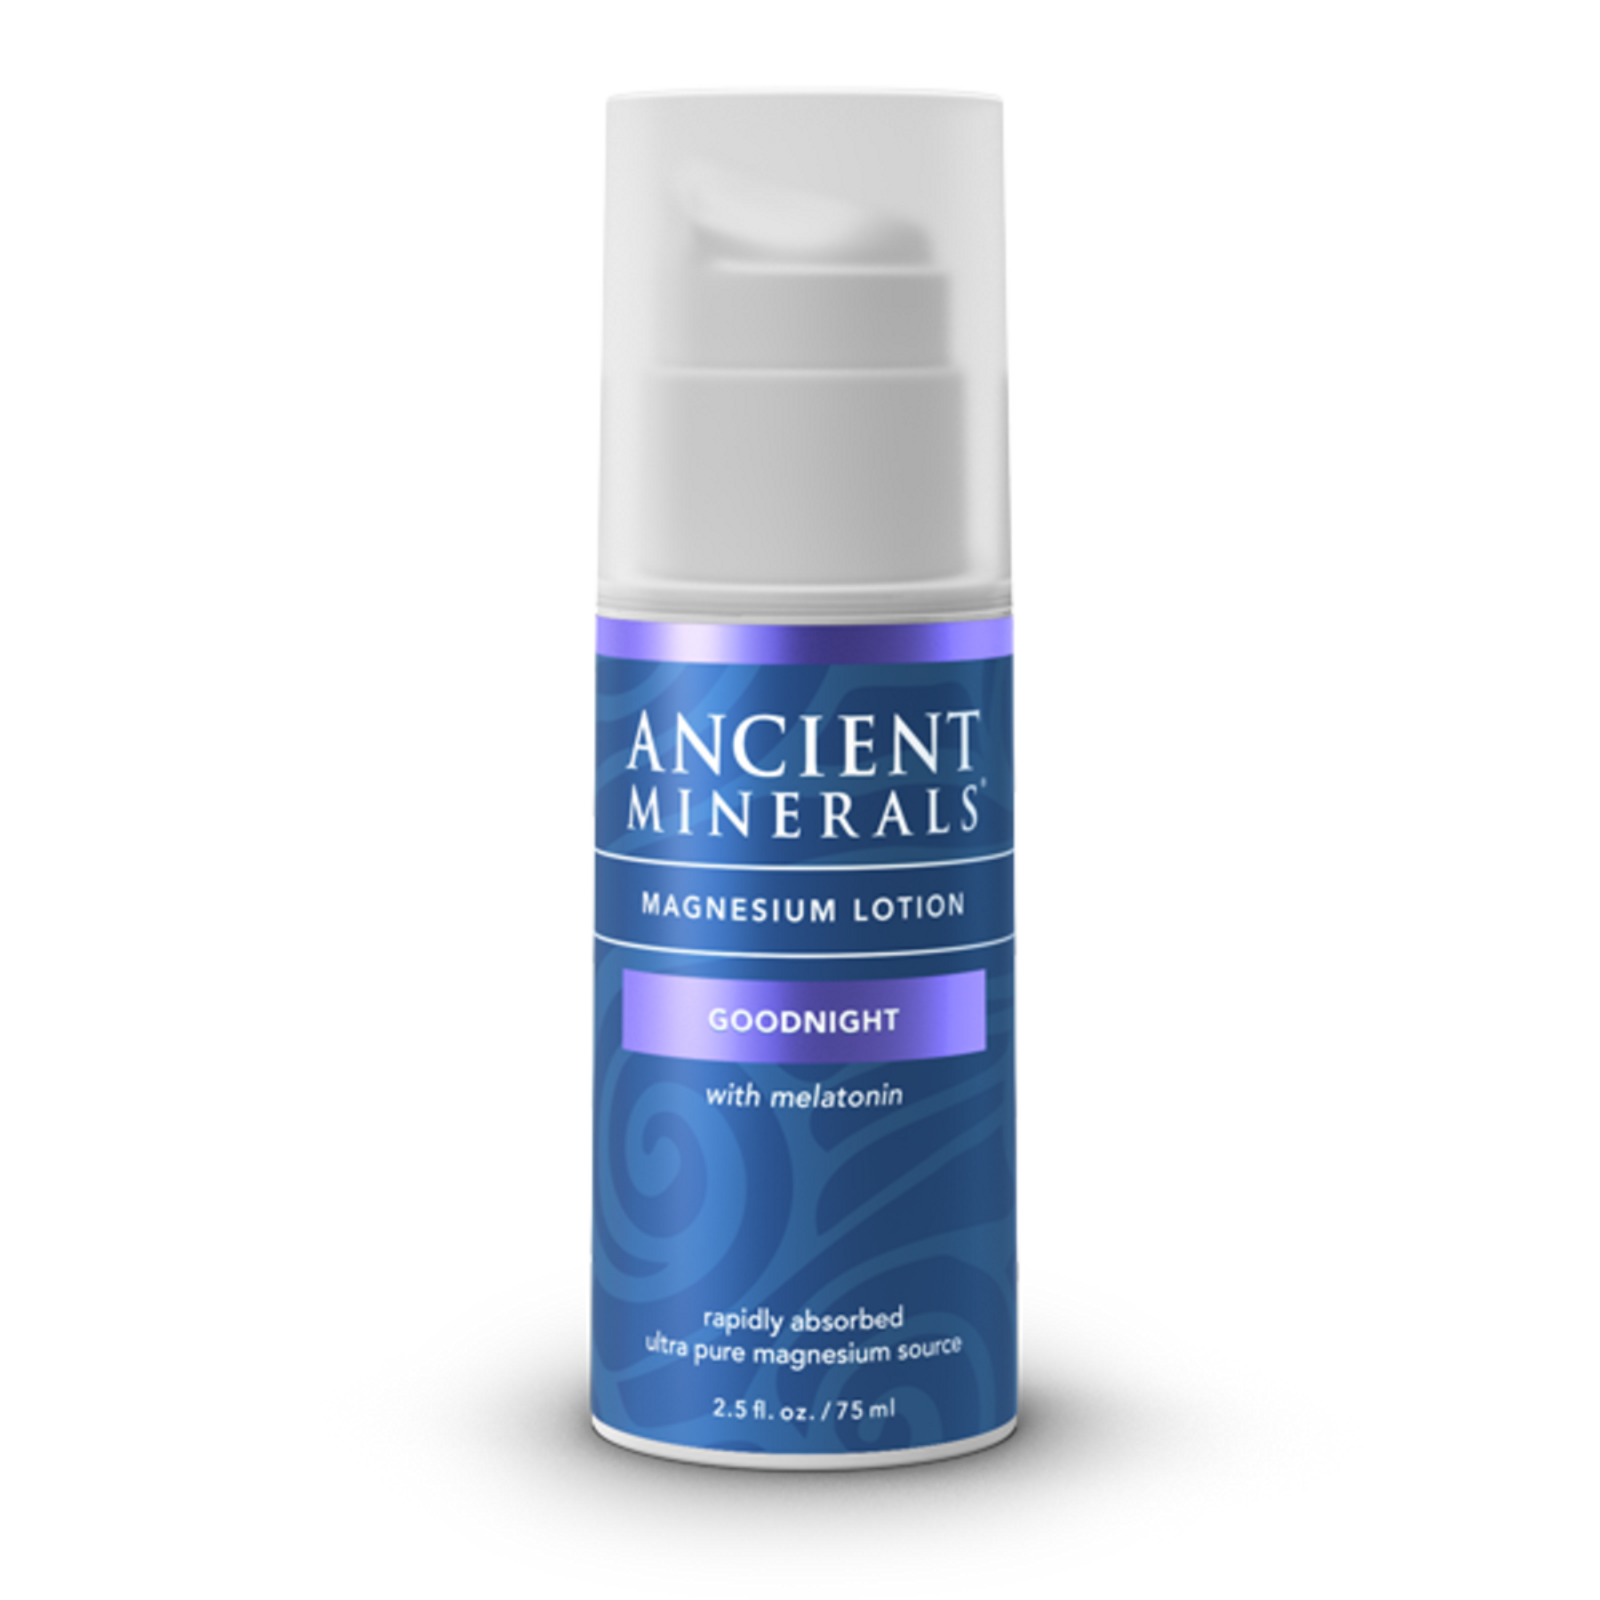 Ancient Minerals Goodnight Lotion